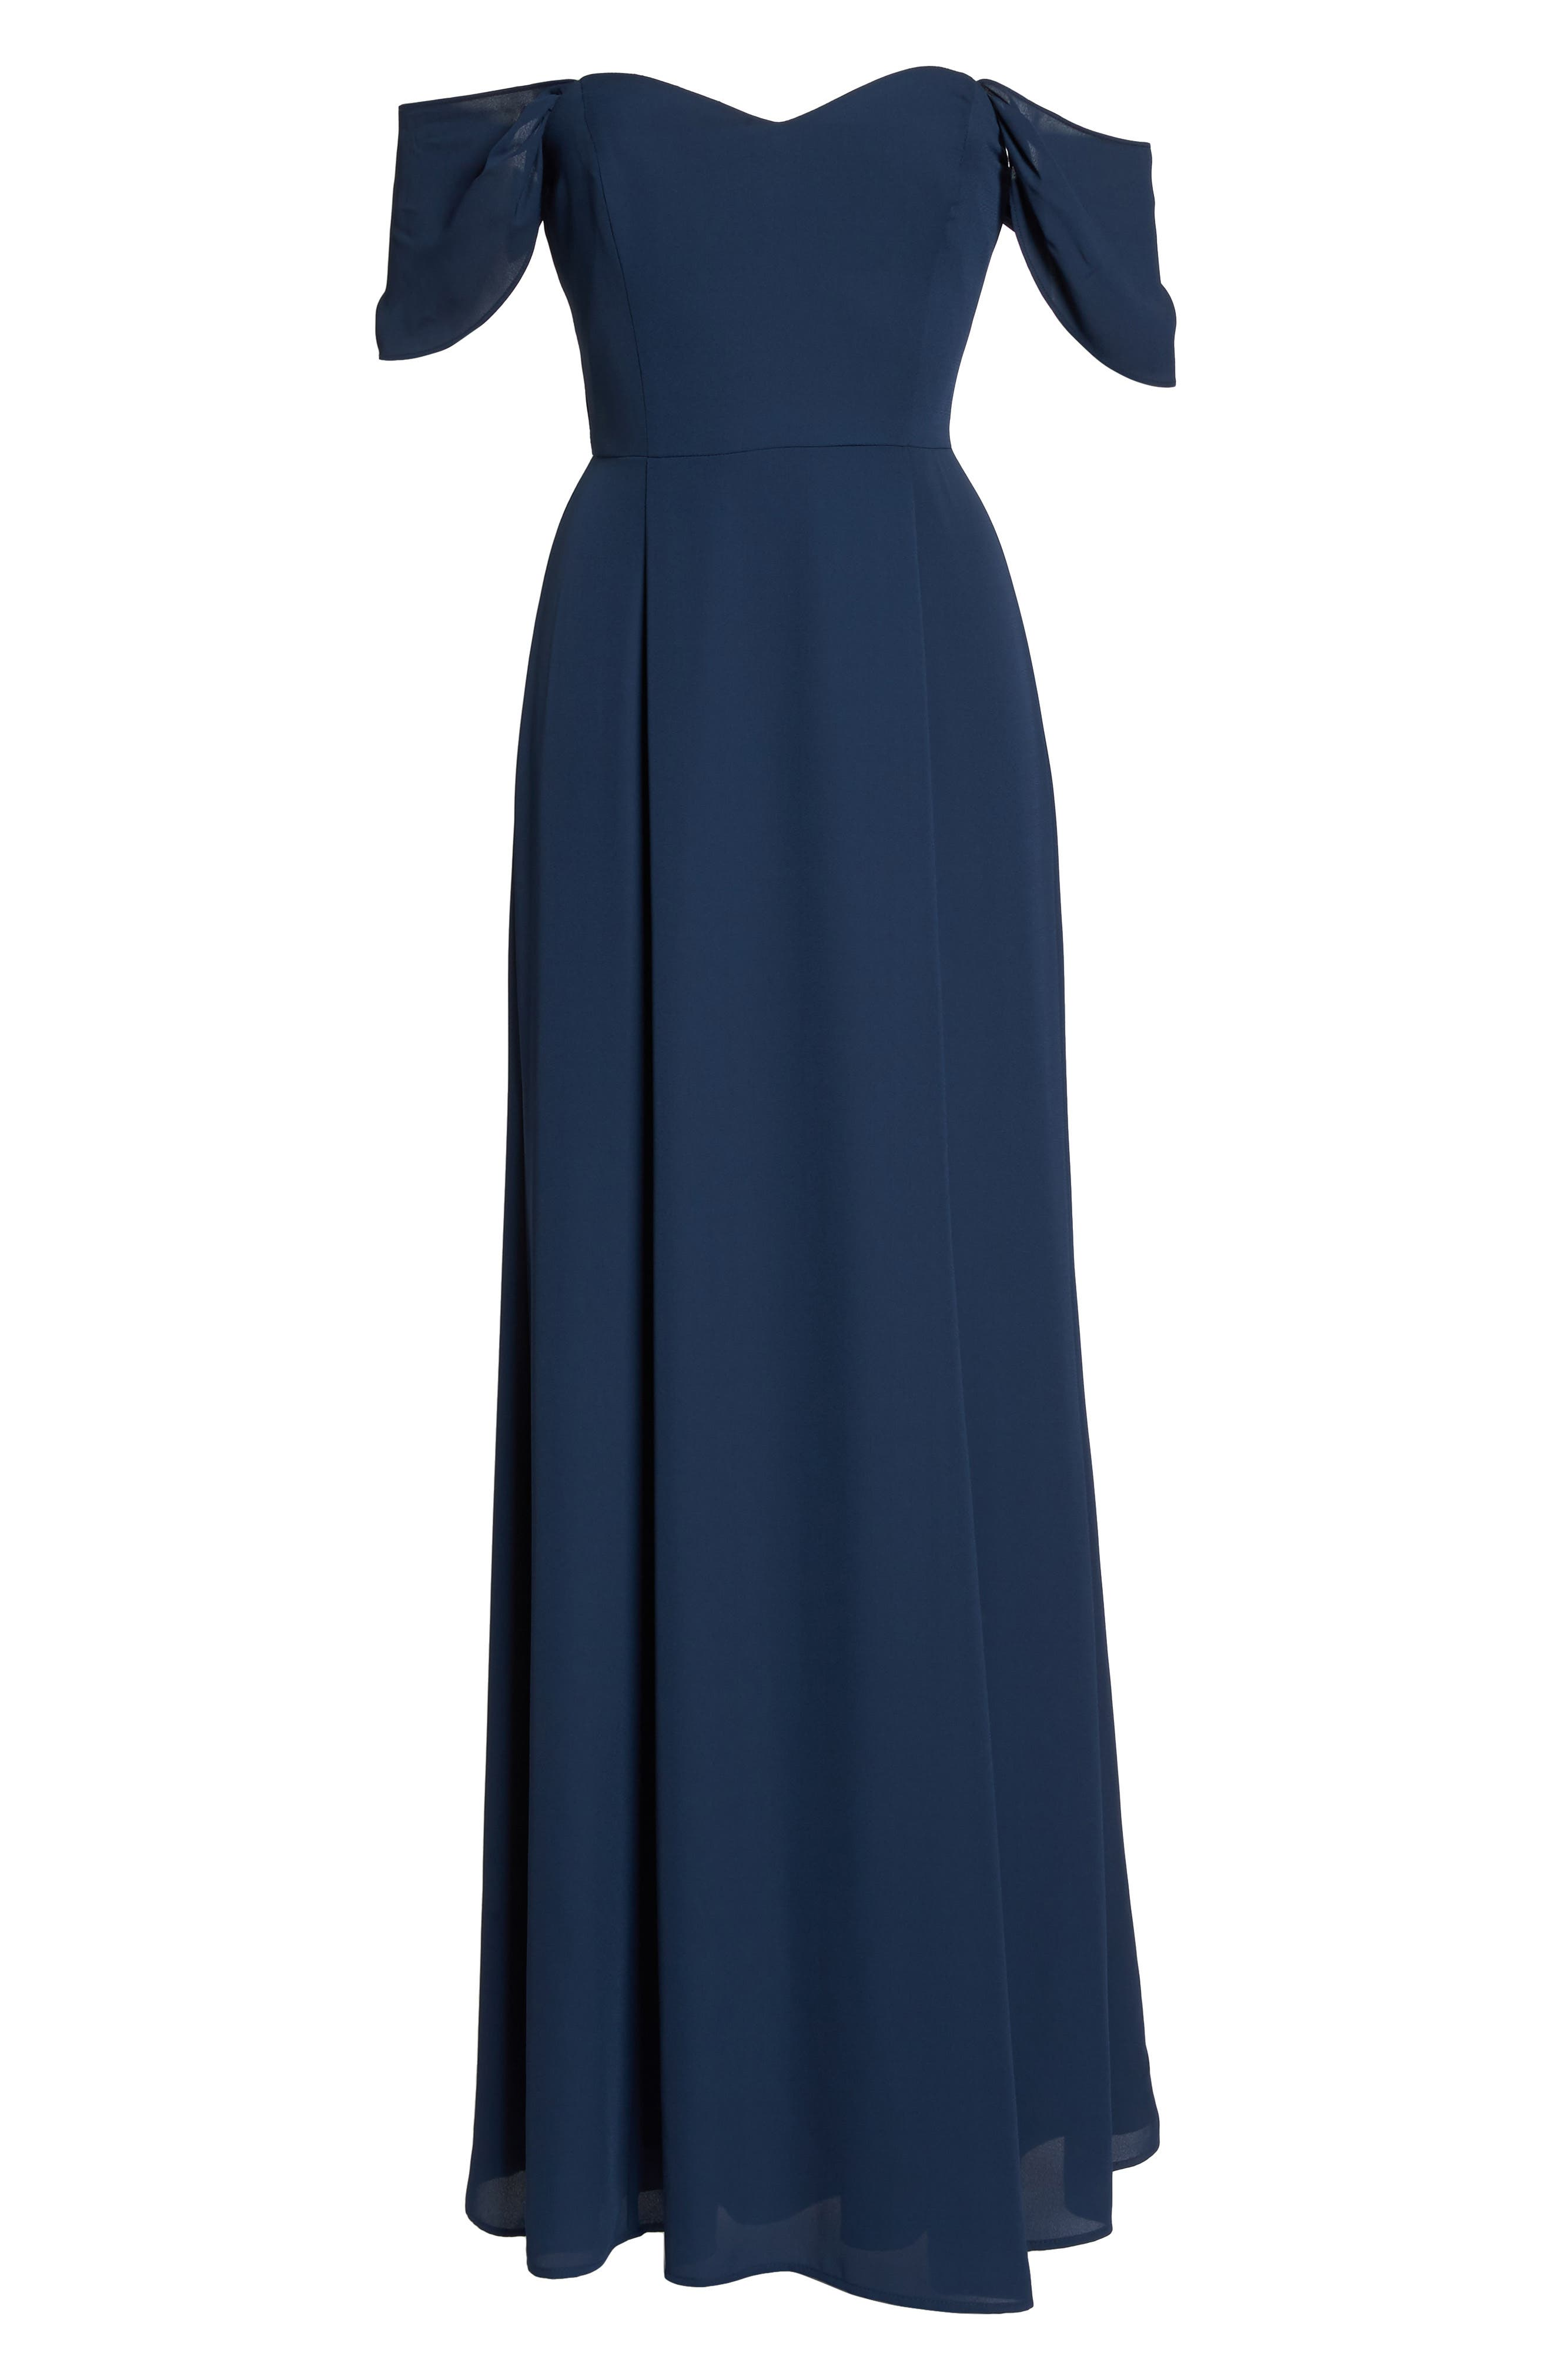 Rachel Off the Shoulder Gored Maxi Dress,                             Alternate thumbnail 6, color,                             Navy